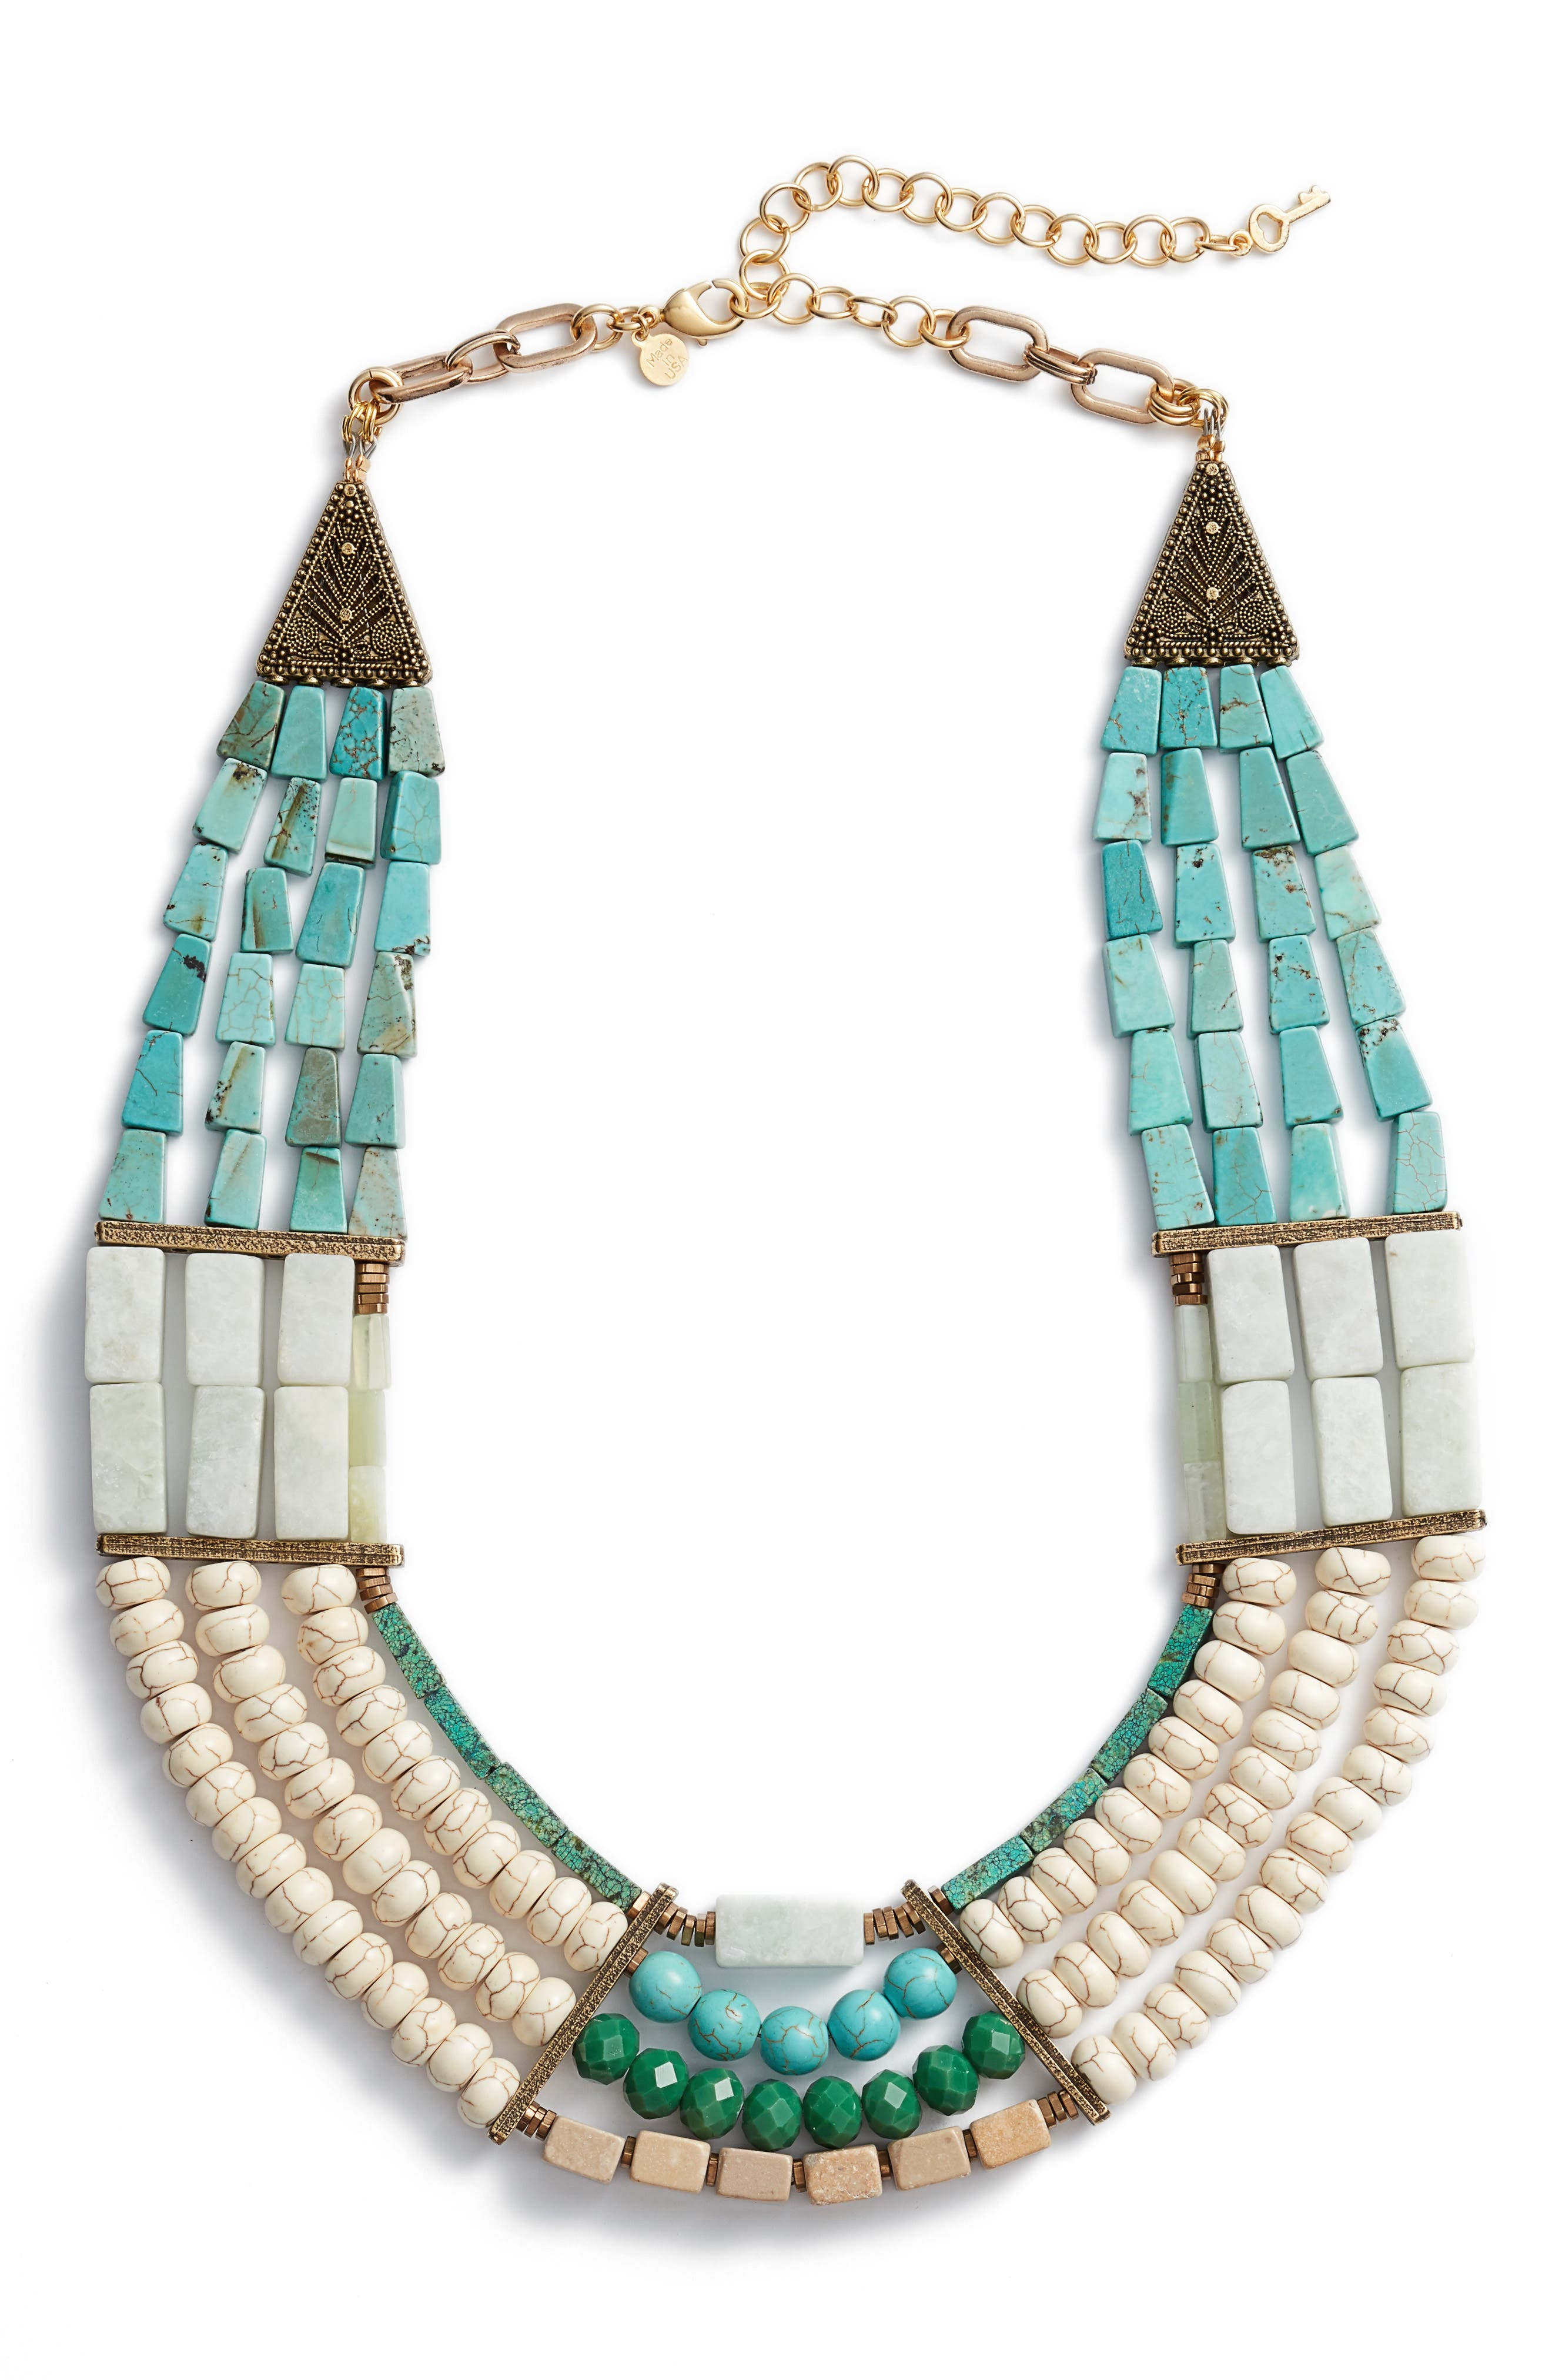 Priscilla 4-Row Statement Necklace,                         Main,                         color, Turquoise